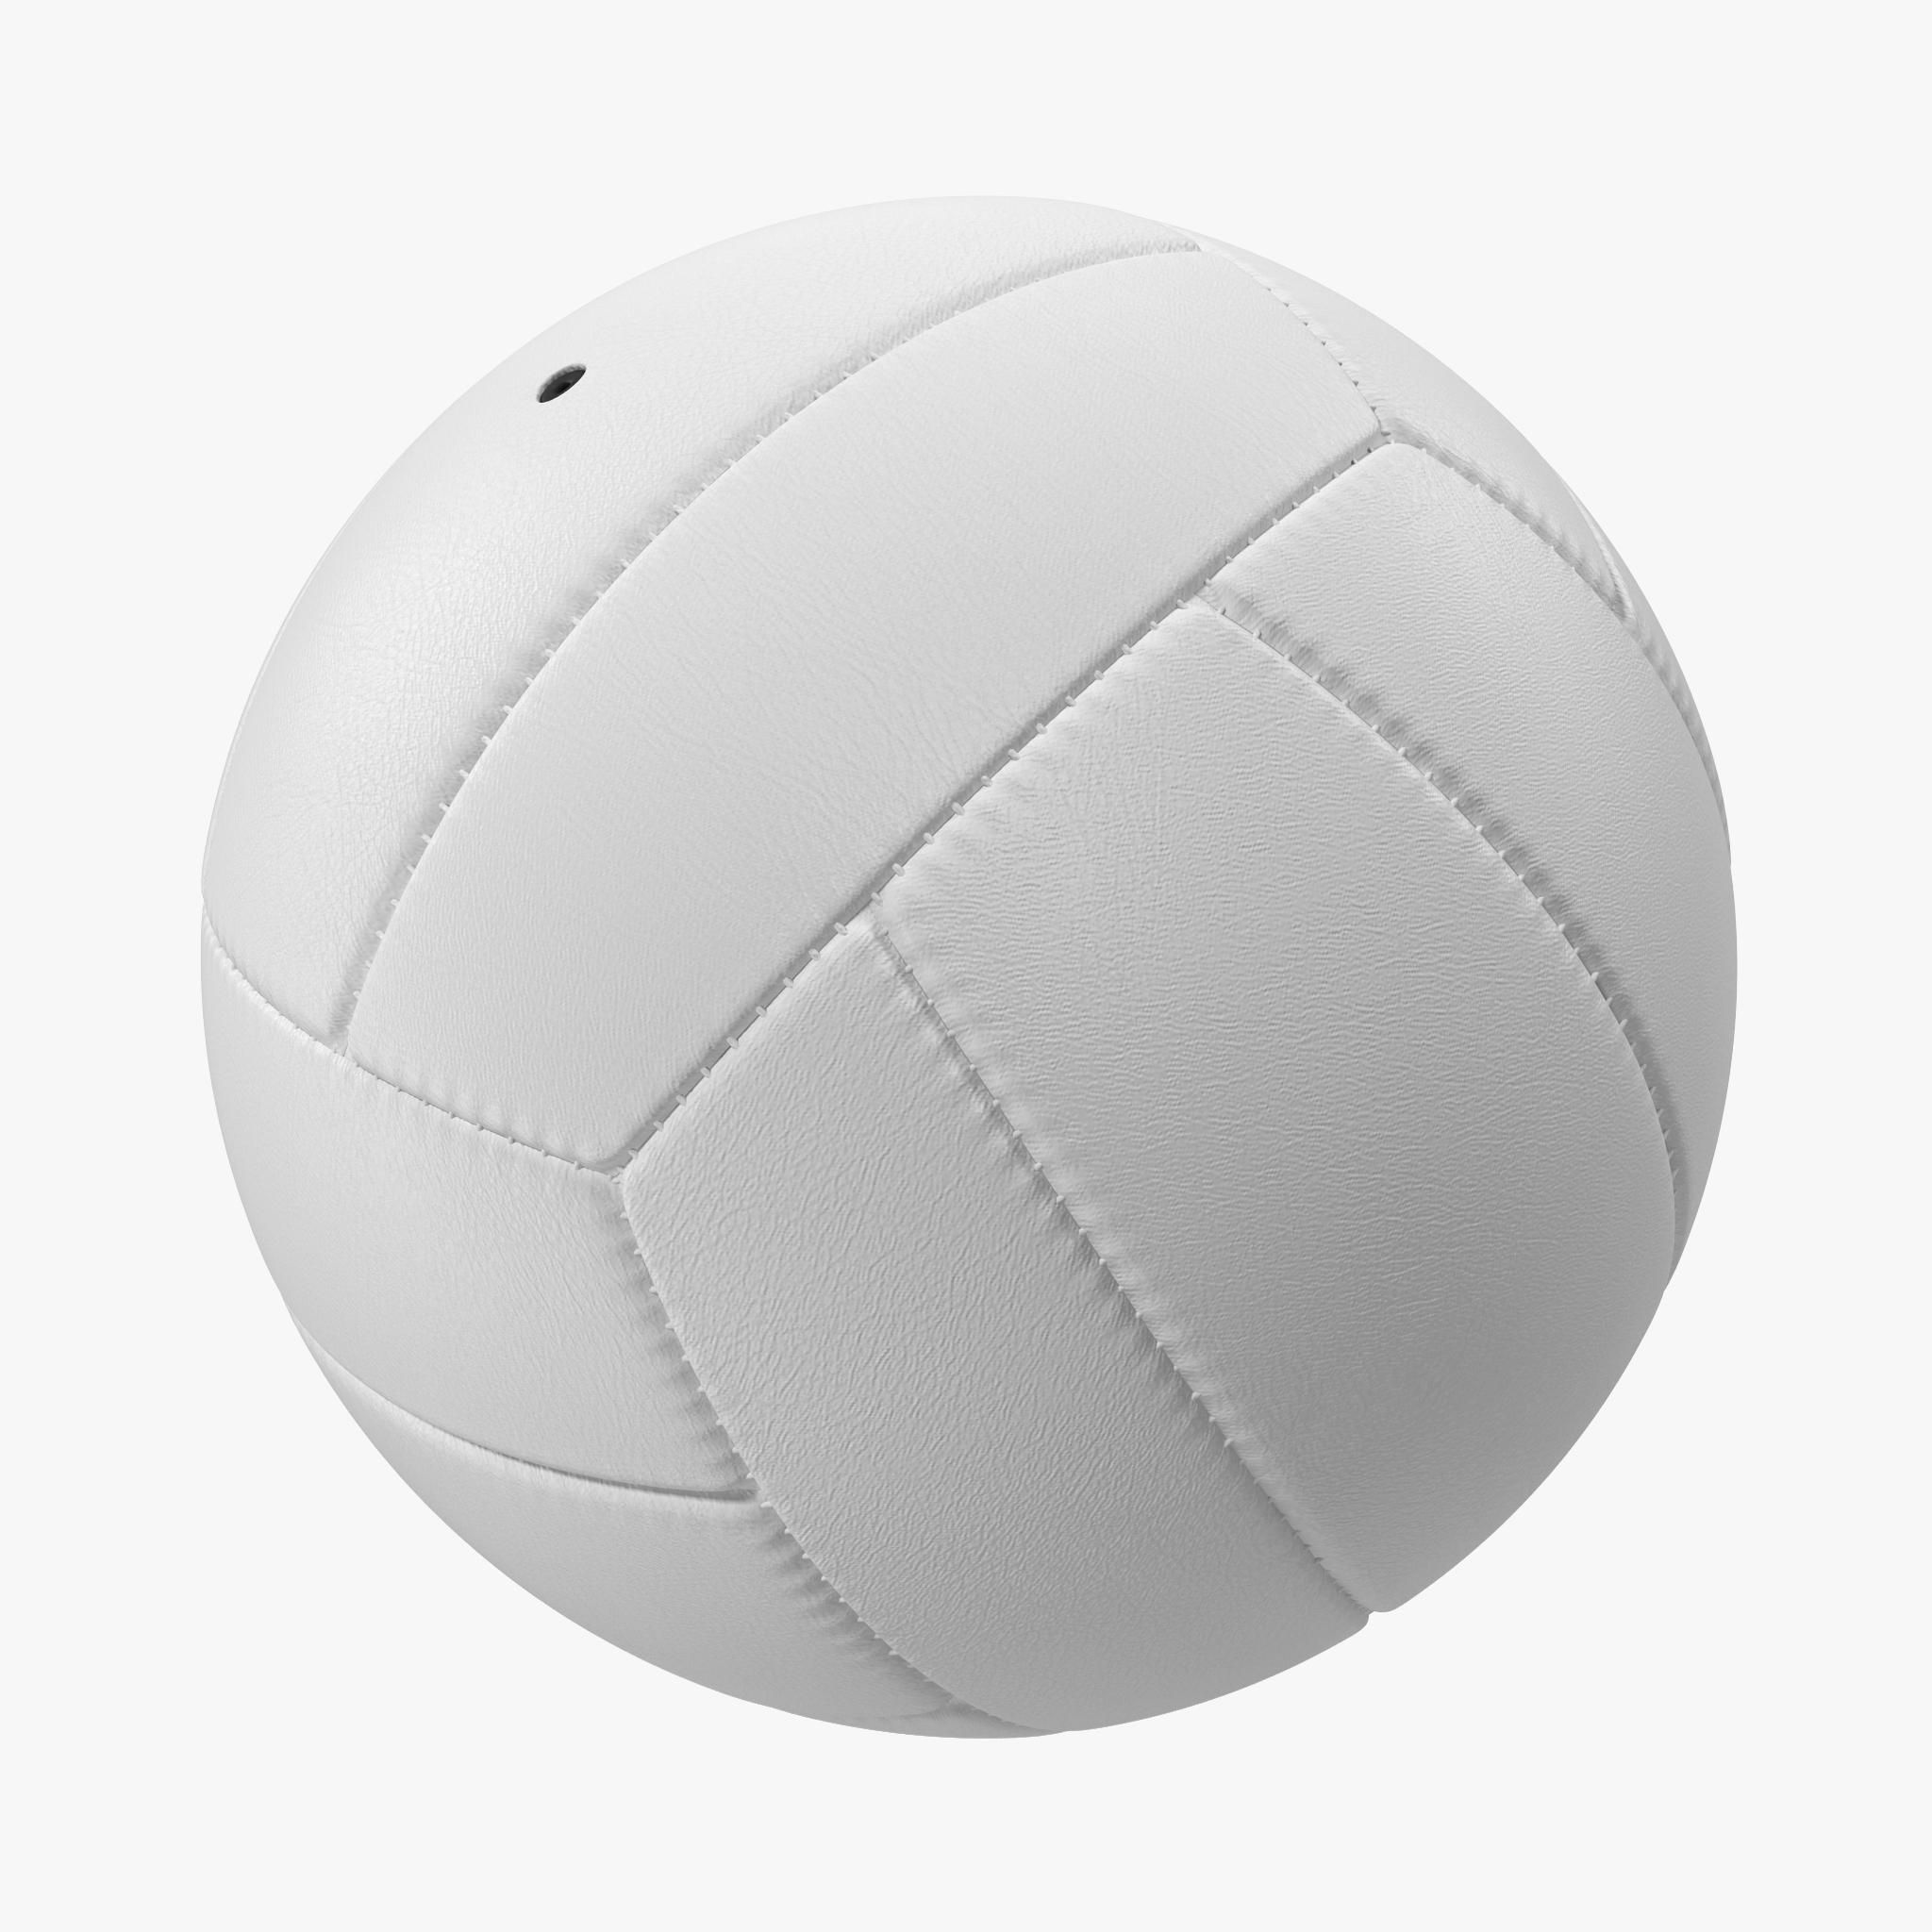 Volleyball Ball 3d Model 3d Model Ad Volleyball Ball Model Volleyball Ball 3d Model